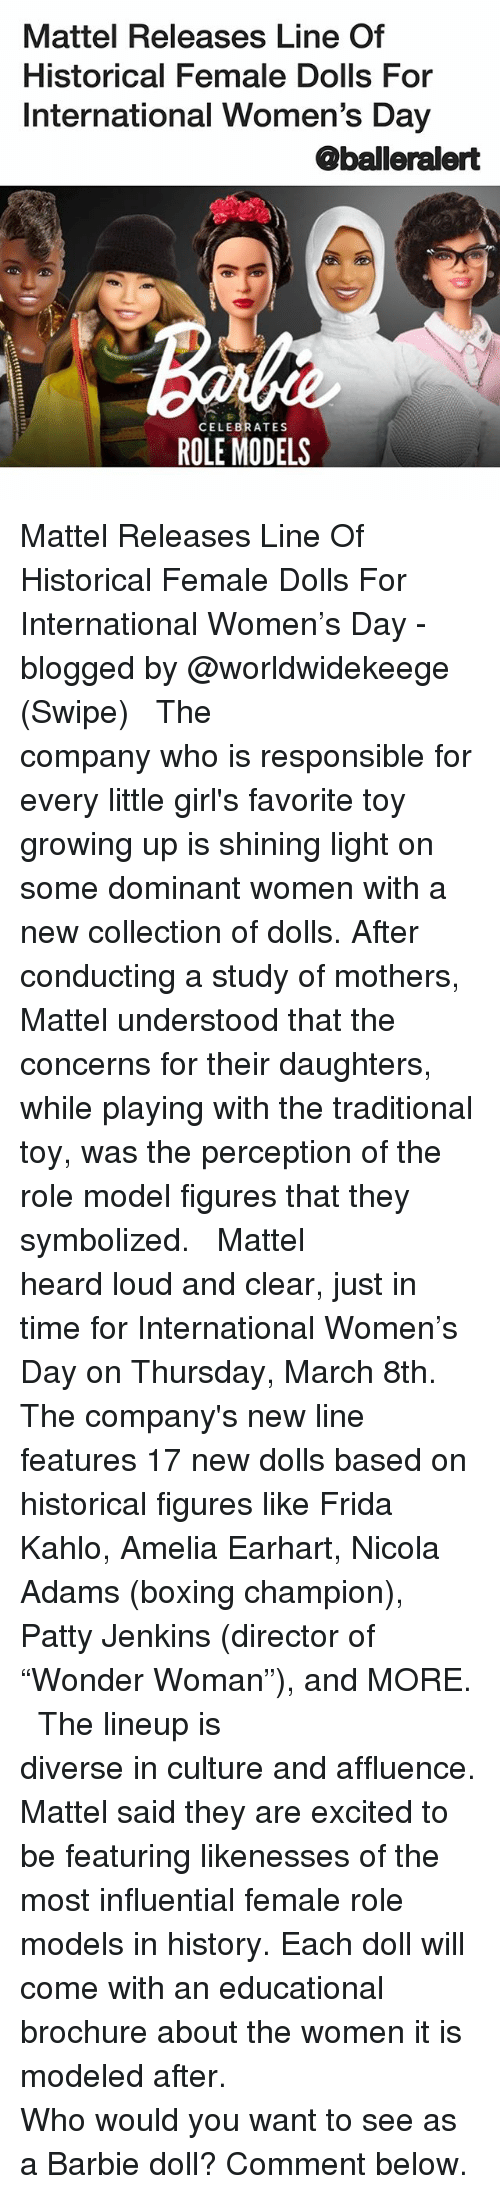 """Barbie, Boxing, and Girls: Mattel Releases Line Of  Historical Female Dolls For  International Women's Day  @balleralert  CELEBRATES  ROLE MODELS Mattel Releases Line Of Historical Female Dolls For International Women's Day - blogged by @worldwidekeege (Swipe) ⠀⠀⠀⠀⠀⠀⠀⠀⠀ ⠀⠀⠀⠀⠀⠀⠀⠀⠀ The company who is responsible for every little girl's favorite toy growing up is shining light on some dominant women with a new collection of dolls. After conducting a study of mothers, Mattel understood that the concerns for their daughters, while playing with the traditional toy, was the perception of the role model figures that they symbolized. ⠀⠀⠀⠀⠀⠀⠀⠀⠀ ⠀⠀⠀⠀⠀⠀⠀⠀⠀ Mattel heard loud and clear, just in time for International Women's Day on Thursday, March 8th. The company's new line features 17 new dolls based on historical figures like Frida Kahlo, Amelia Earhart, Nicola Adams (boxing champion), Patty Jenkins (director of """"Wonder Woman""""), and MORE. ⠀⠀⠀⠀⠀⠀⠀⠀⠀ ⠀⠀⠀⠀⠀⠀⠀⠀⠀ The lineup is diverse in culture and affluence. Mattel said they are excited to be featuring likenesses of the most influential female role models in history. Each doll will come with an educational brochure about the women it is modeled after. ⠀⠀⠀⠀⠀⠀⠀⠀⠀ ⠀⠀⠀⠀⠀⠀⠀⠀⠀ Who would you want to see as a Barbie doll? Comment below."""